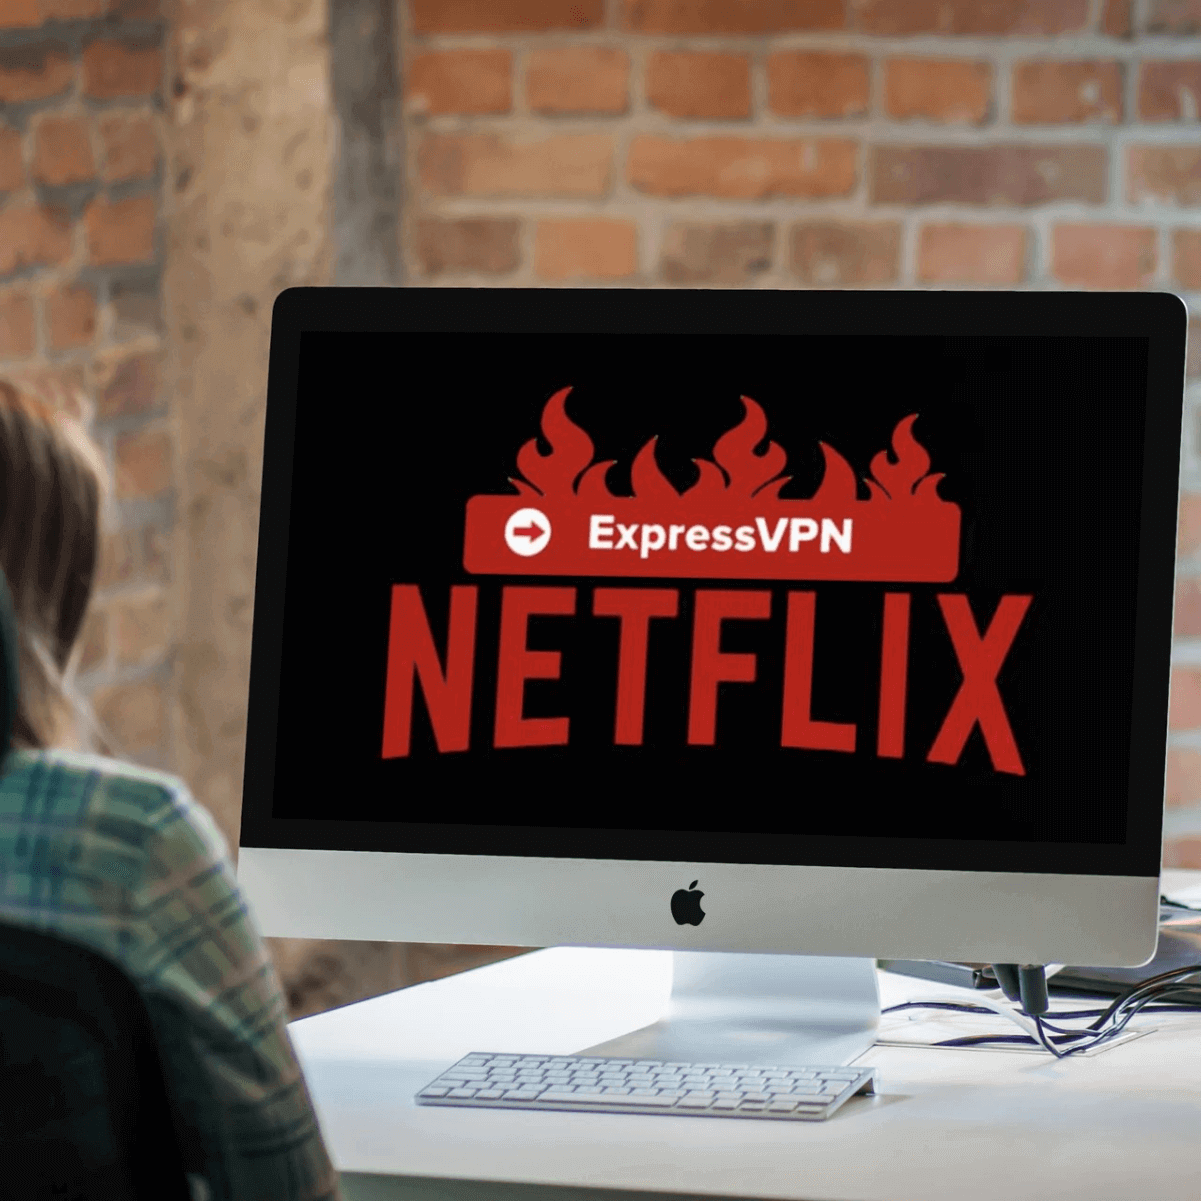 Does ExpressVPN Work With Netflix in 2019?